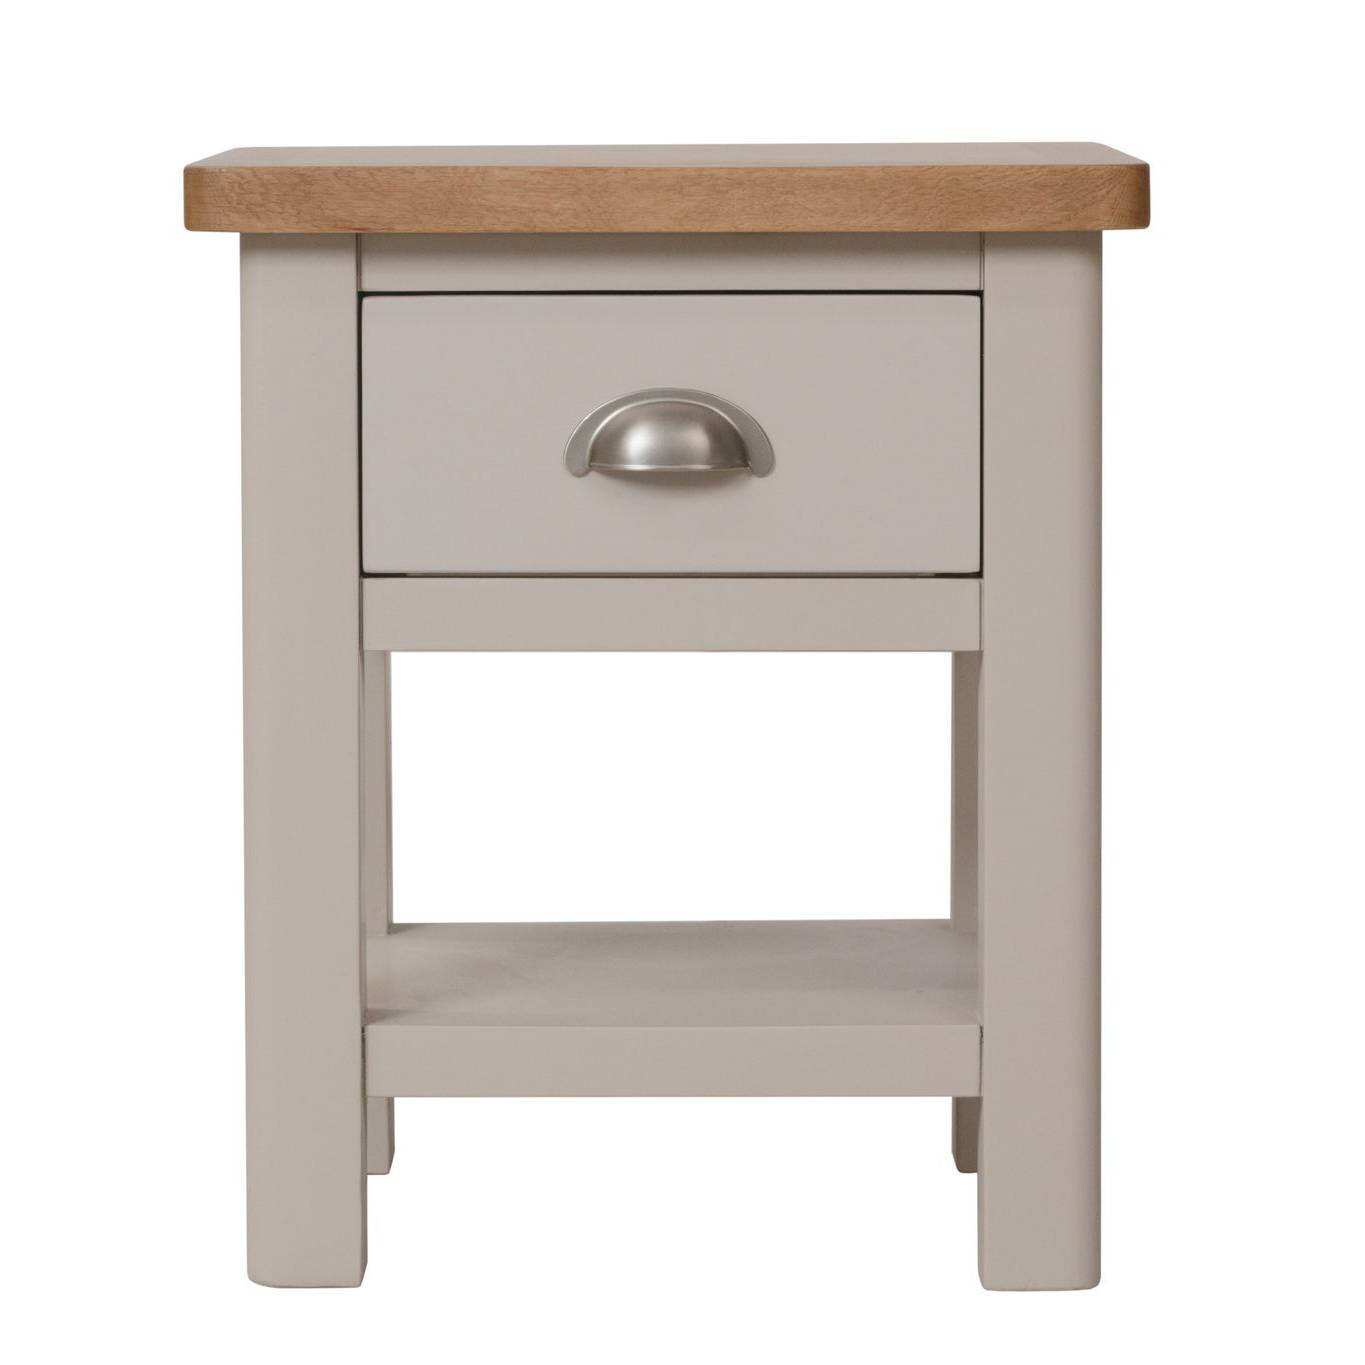 The Truffle - 1 Drawer Lamp Table